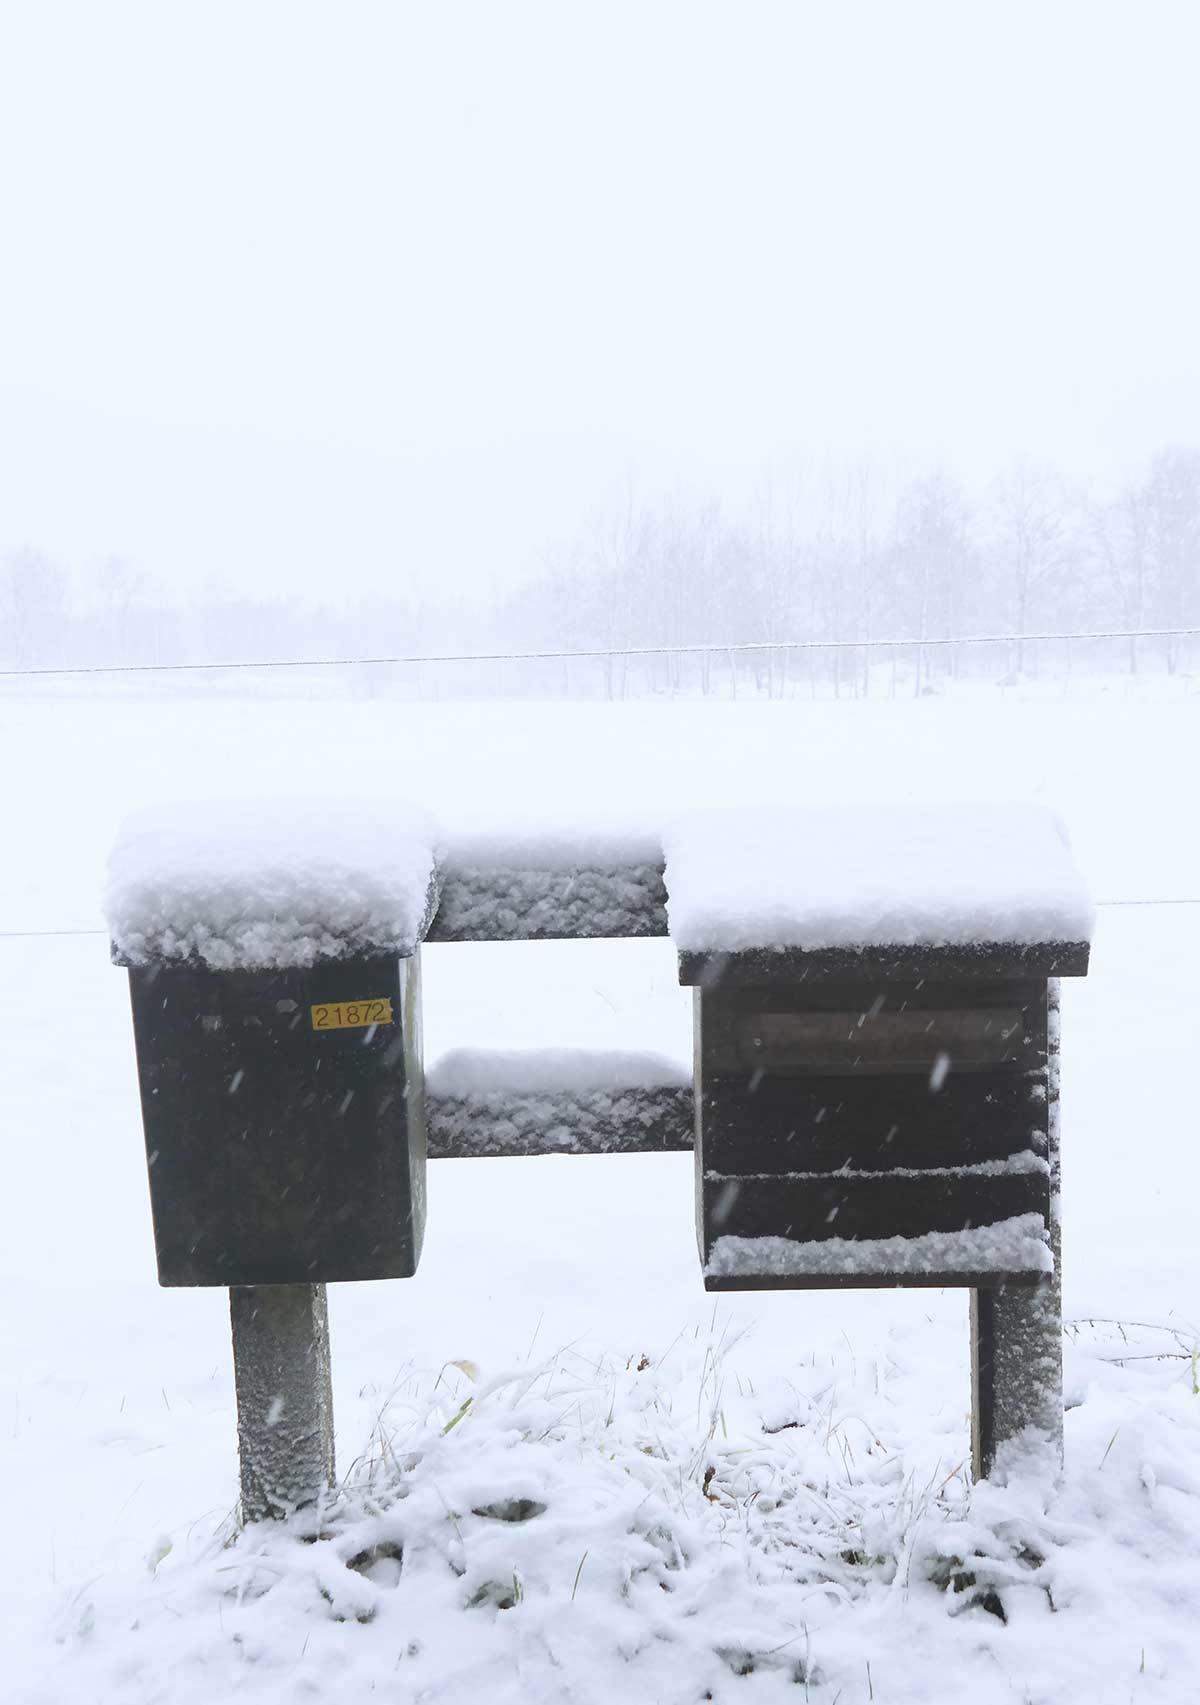 Mailbox in a snow.. It's time to get a new mailbox and move again!